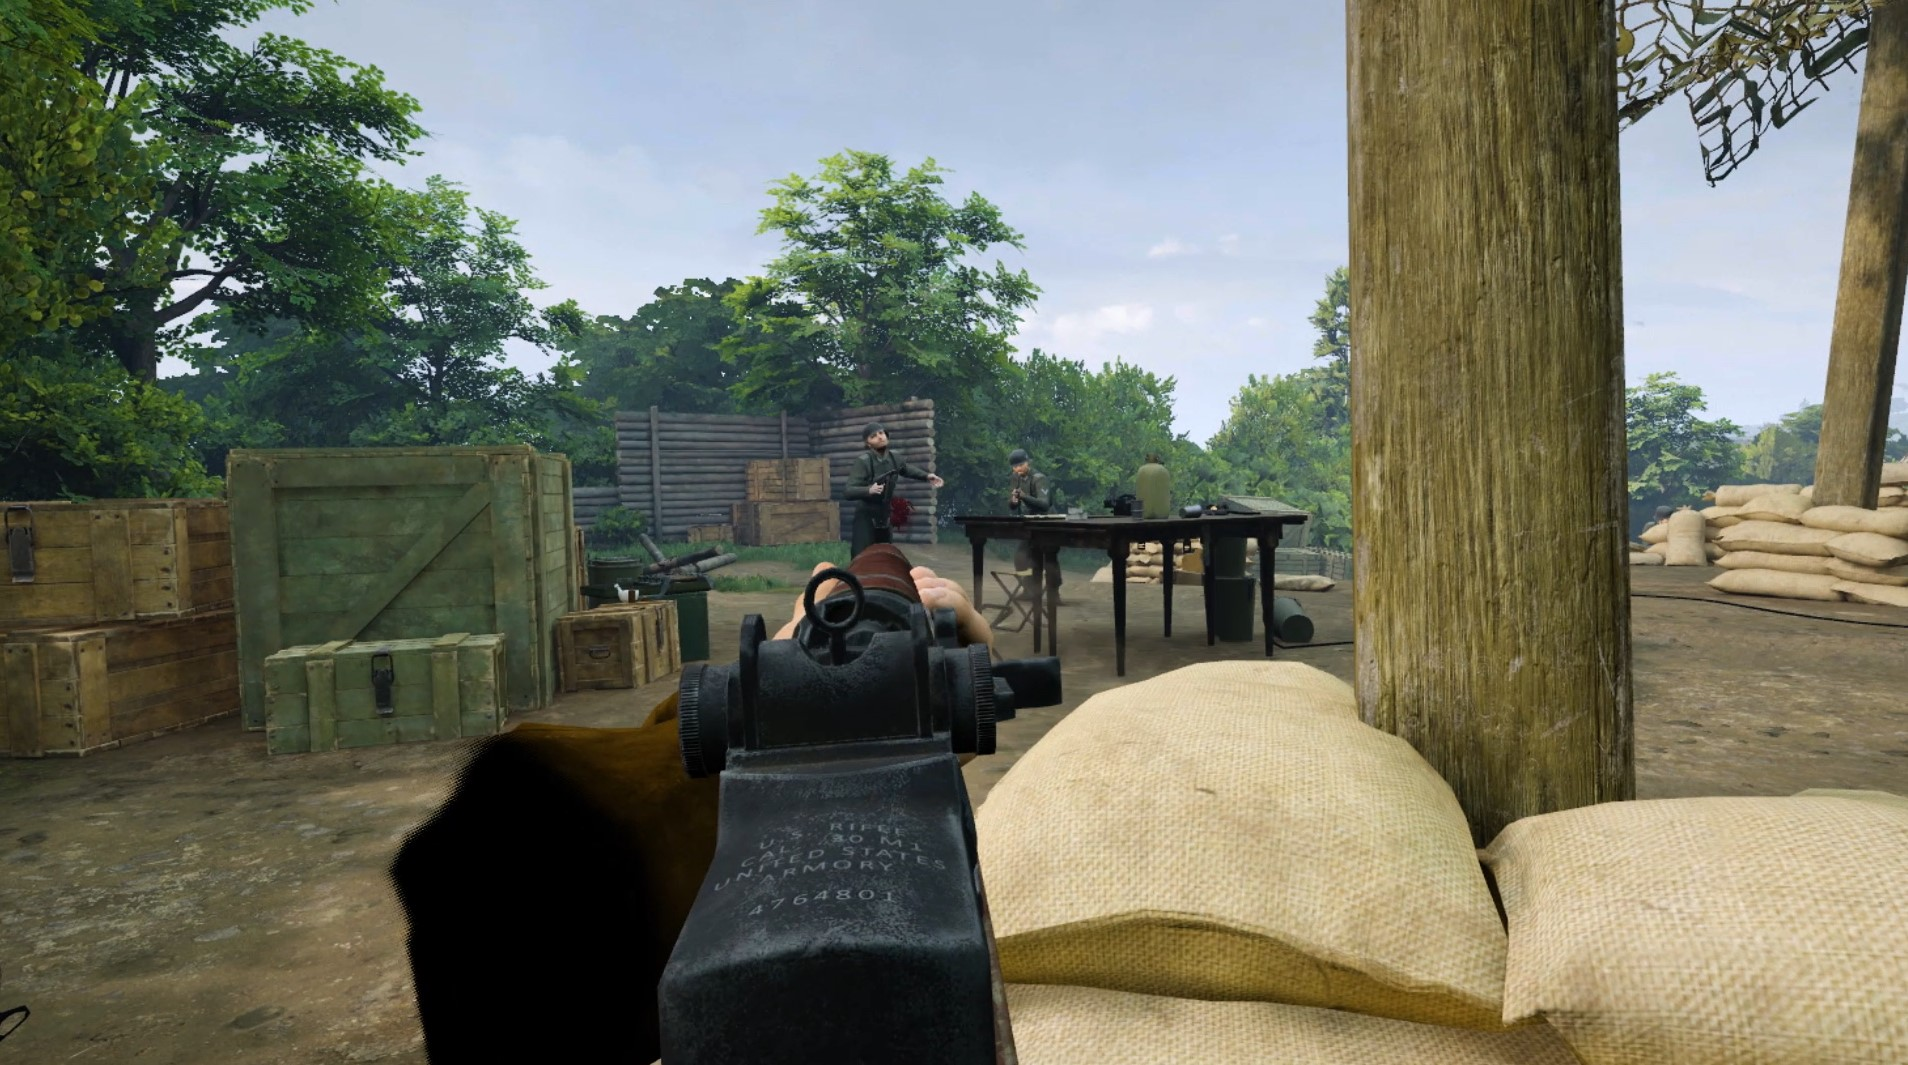 medal of honor vr aim down sights respawn